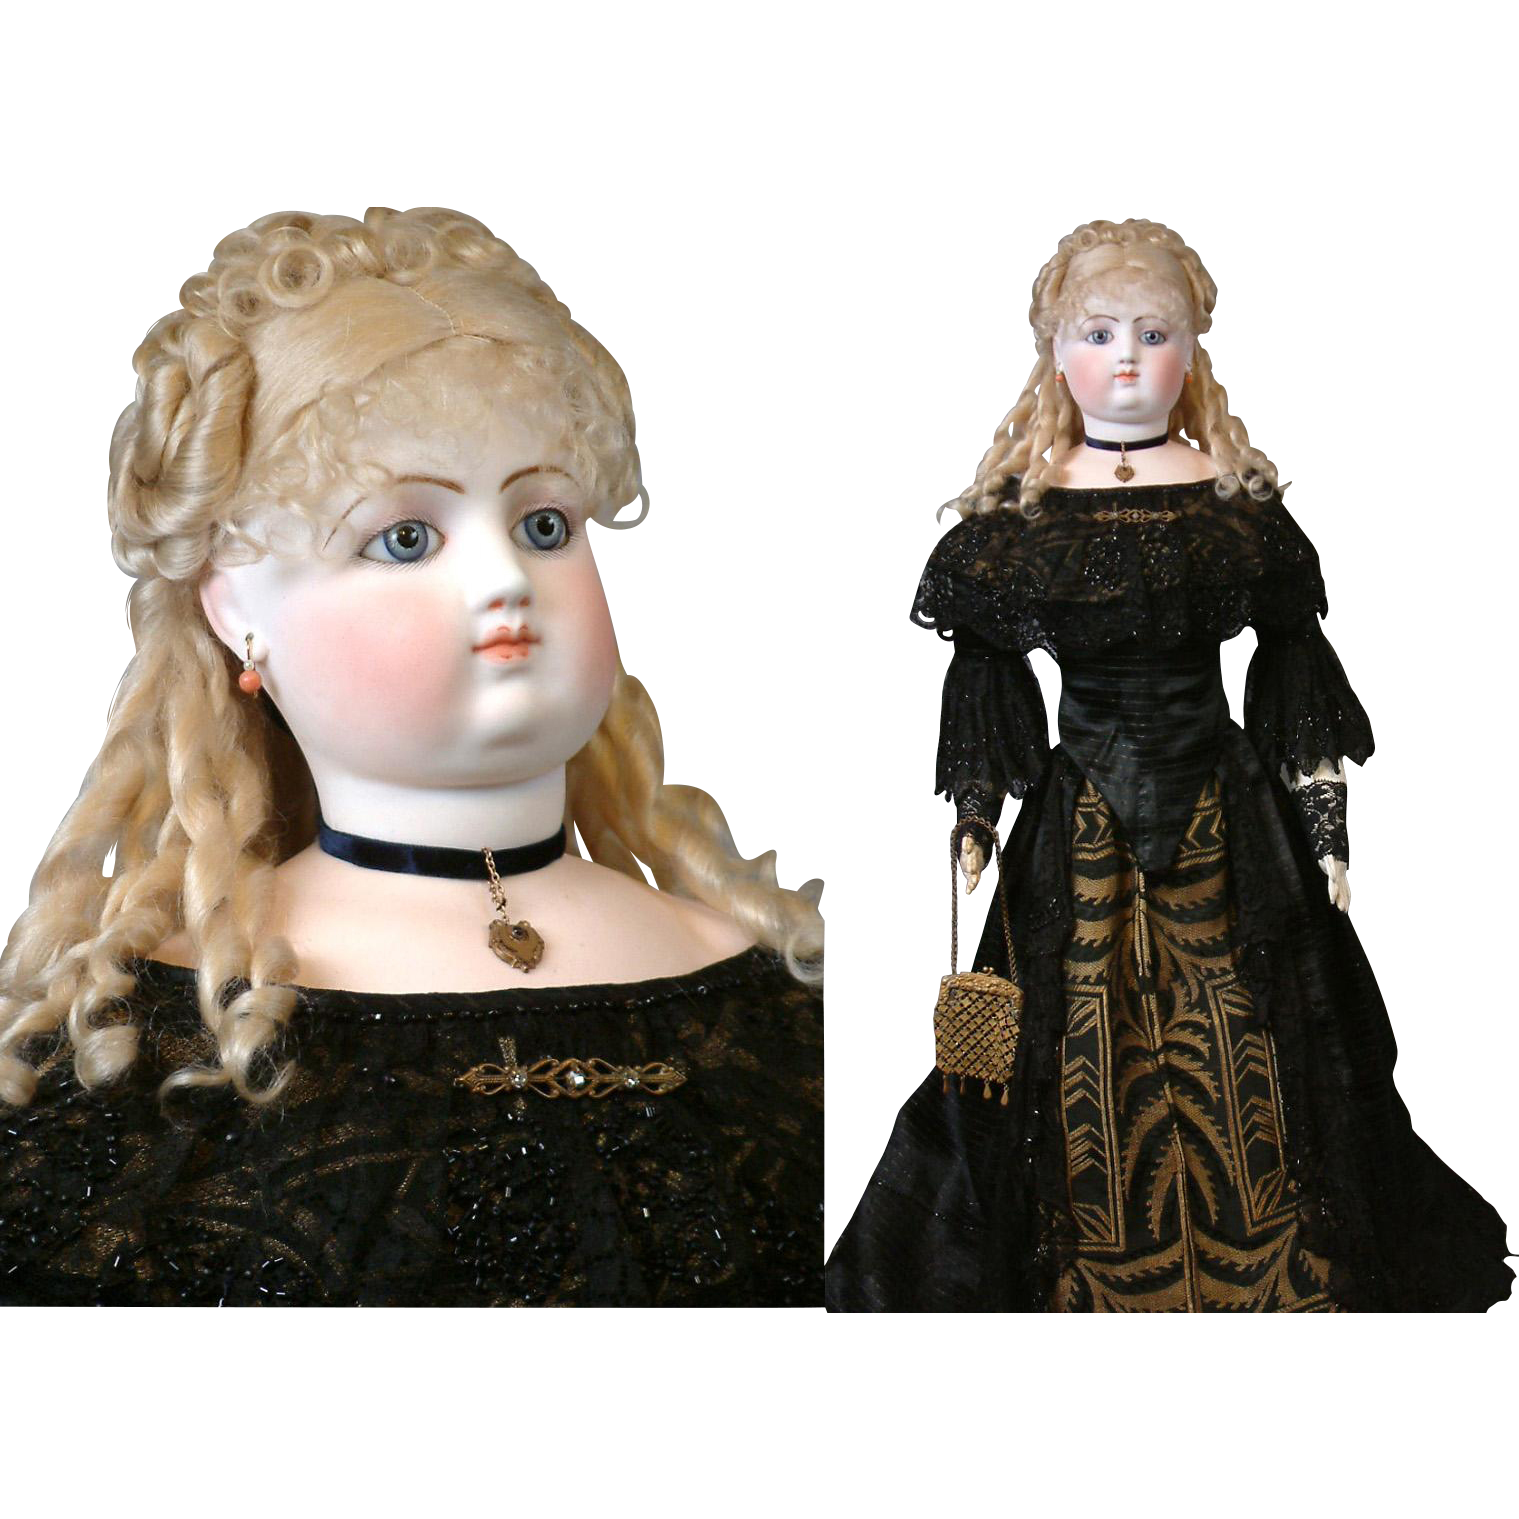 """33"""" Fashion Poupee By Gaultier For Exhibition In Antique Silk Gown - @rubylanecom Vintage & Antique Dolls #RubyLane"""